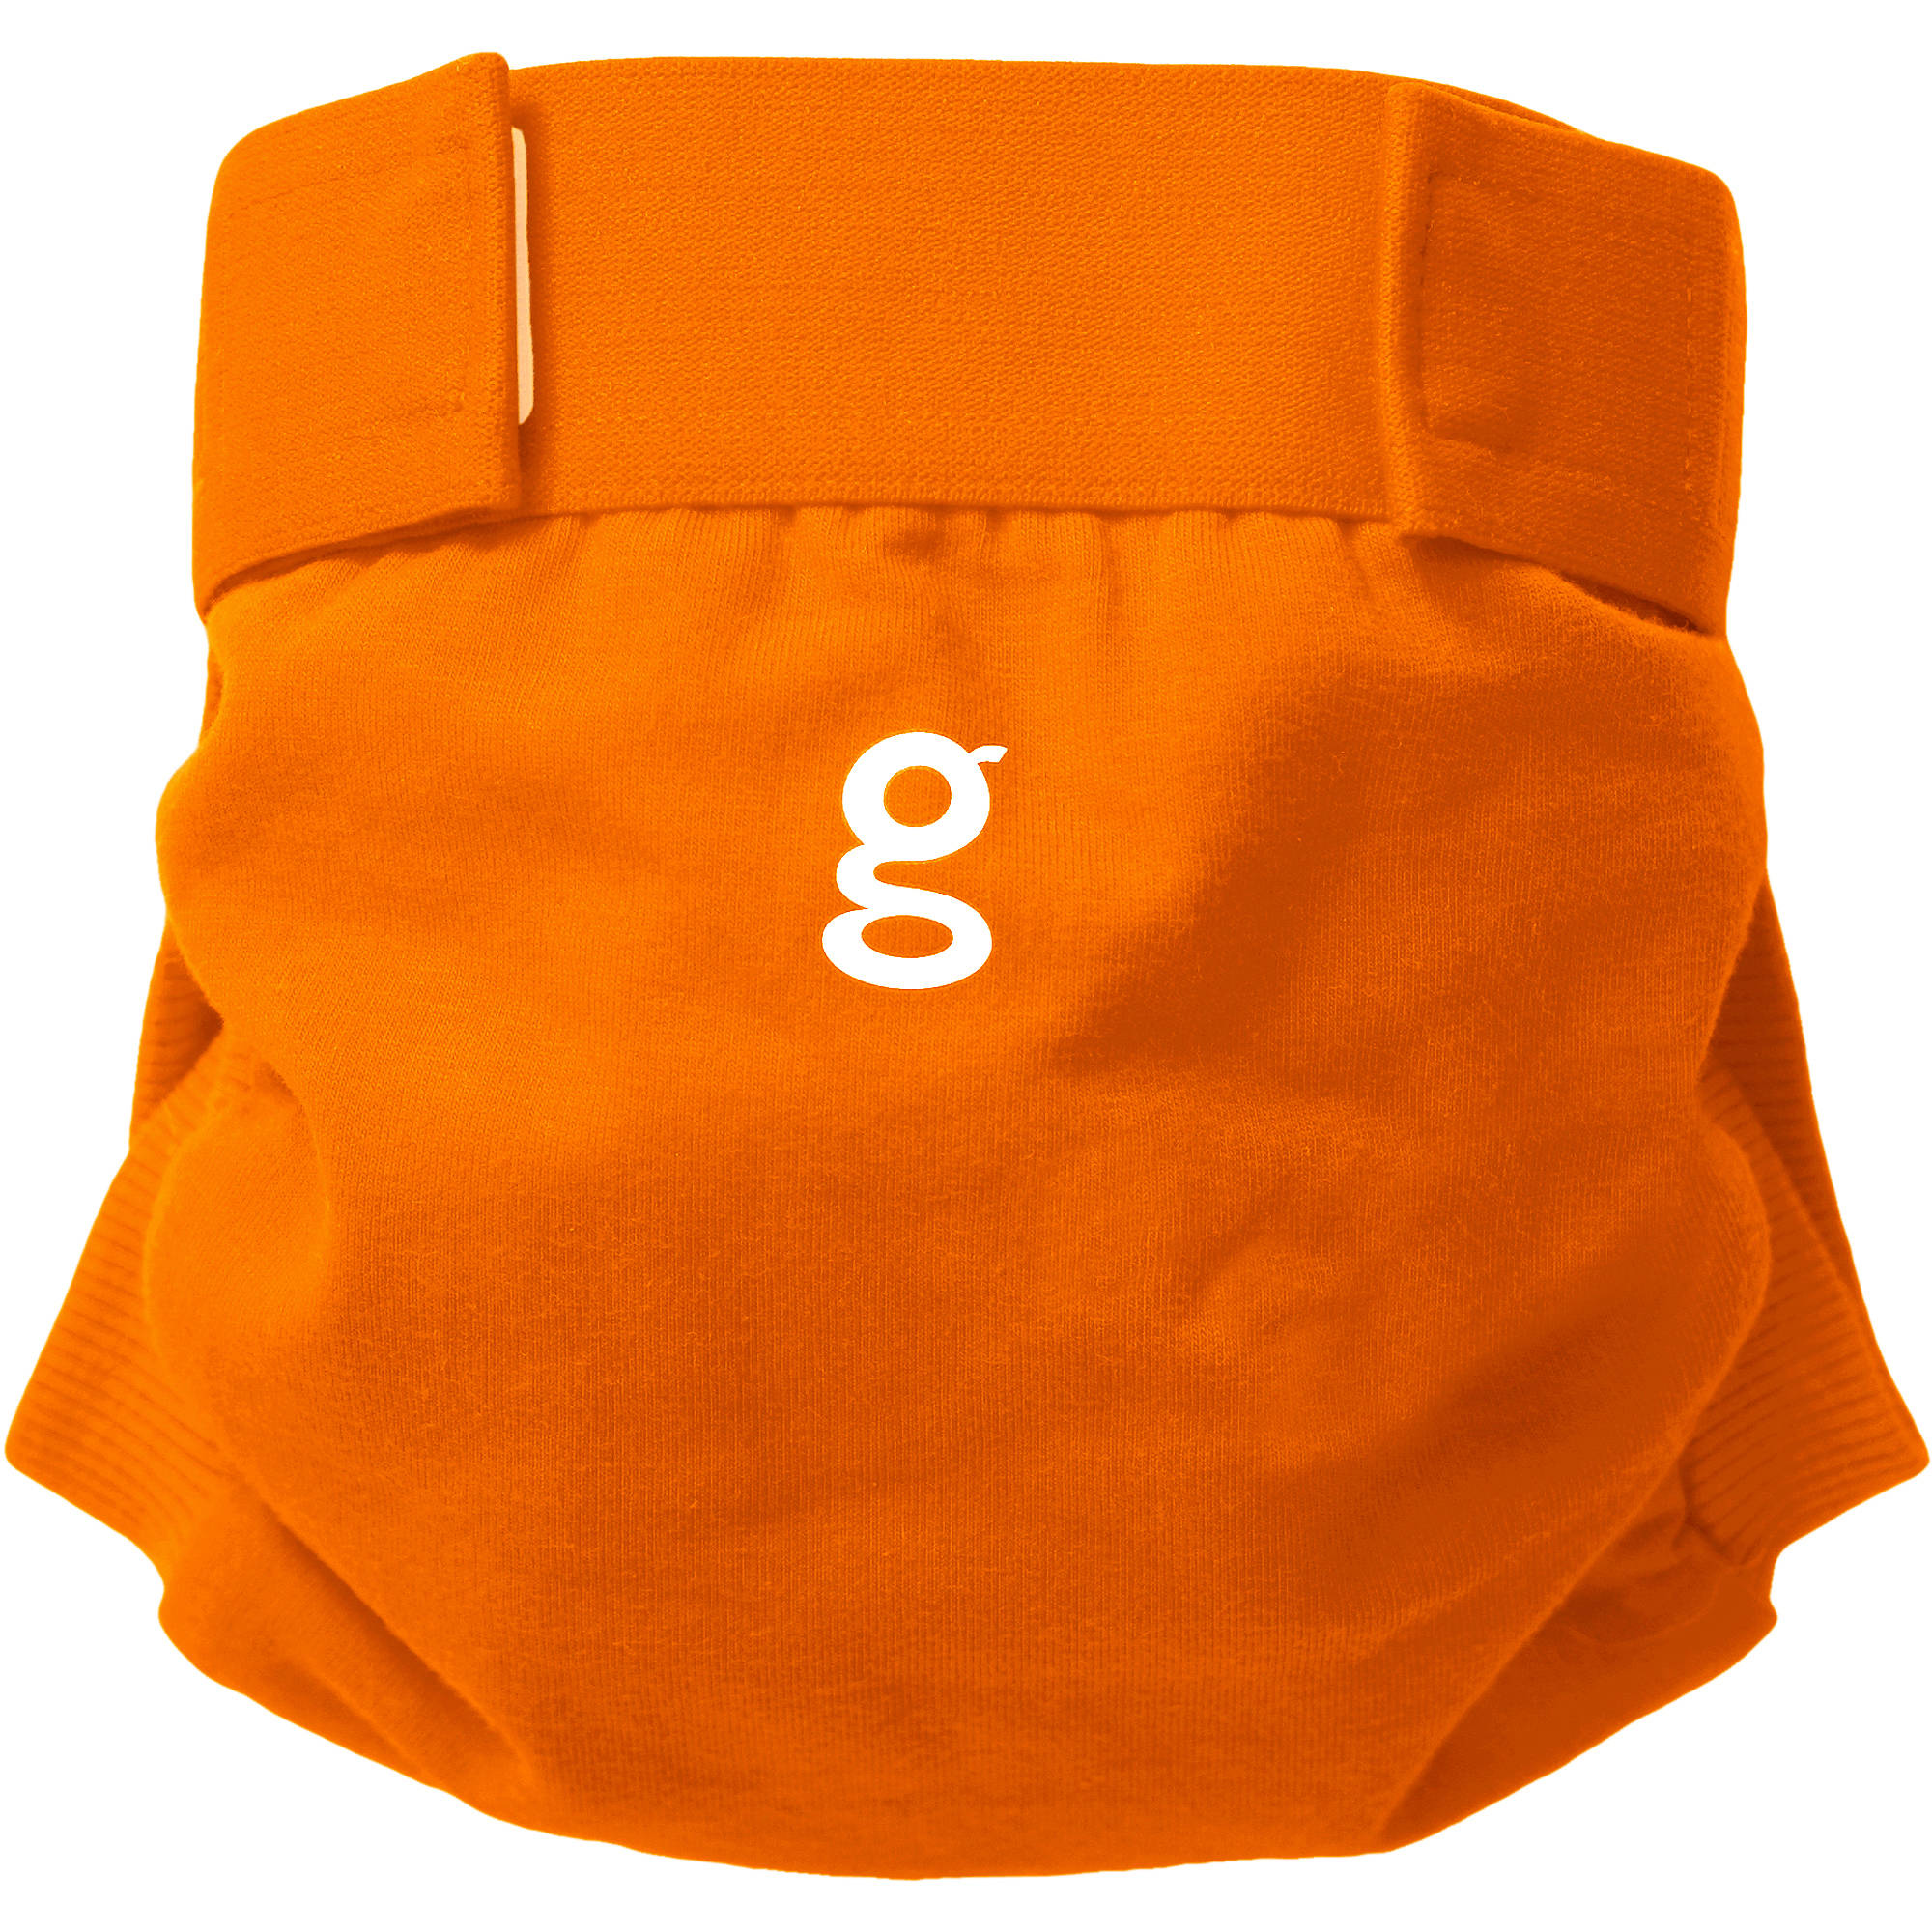 gDiapers gPants Reusable Diaper Covers - Solid Colors (Choose Your Size/Color)